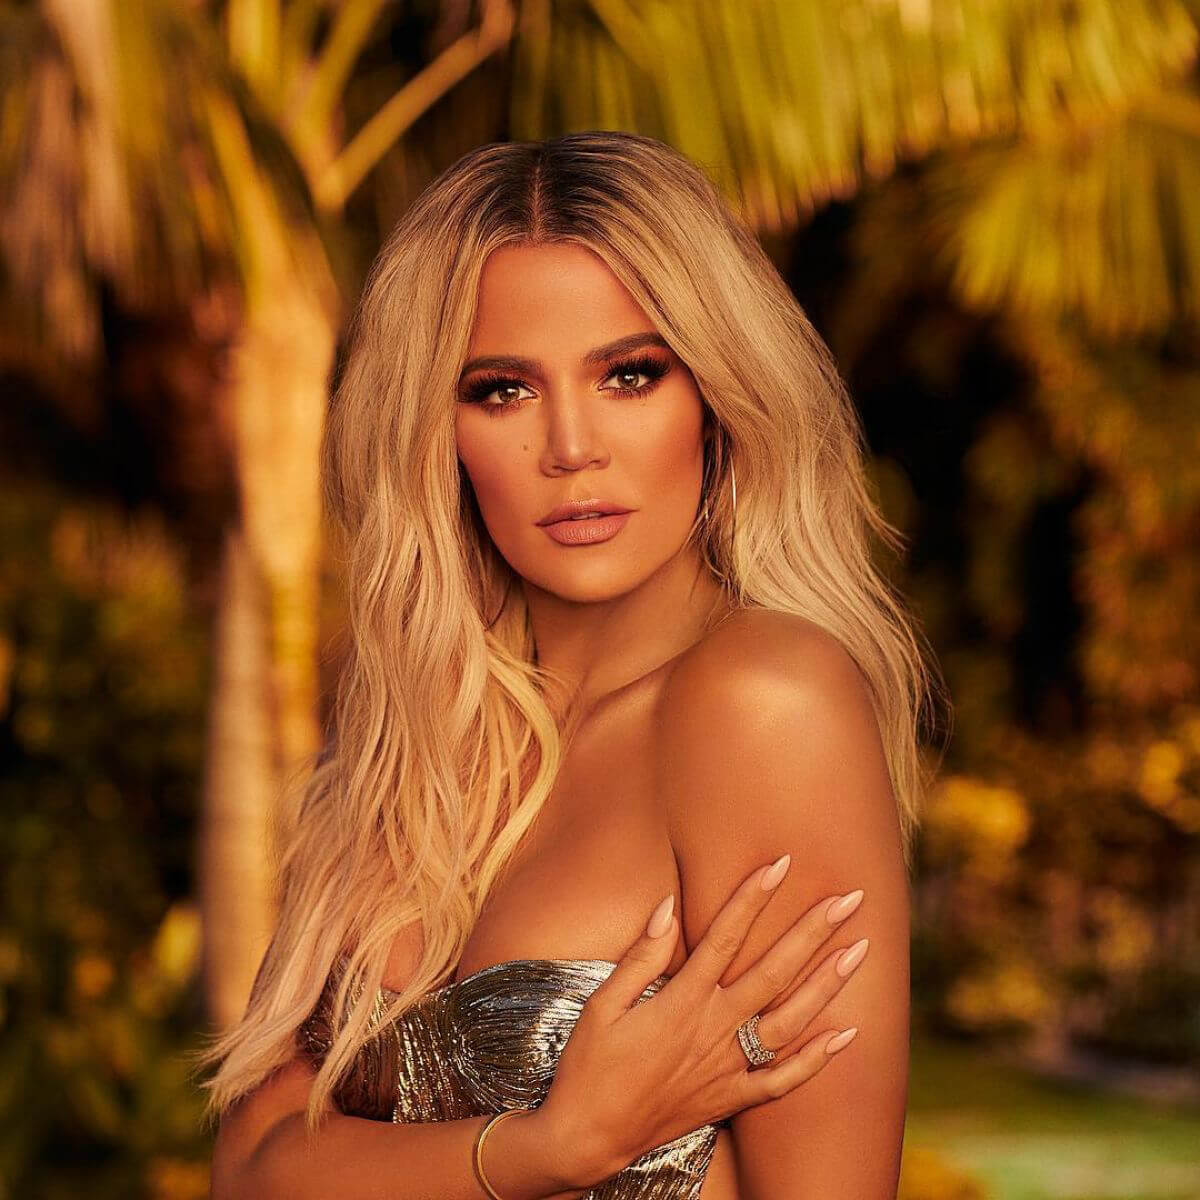 Khloe Kardashian for Becca Cosmetics 2018 Campaign Photos 1